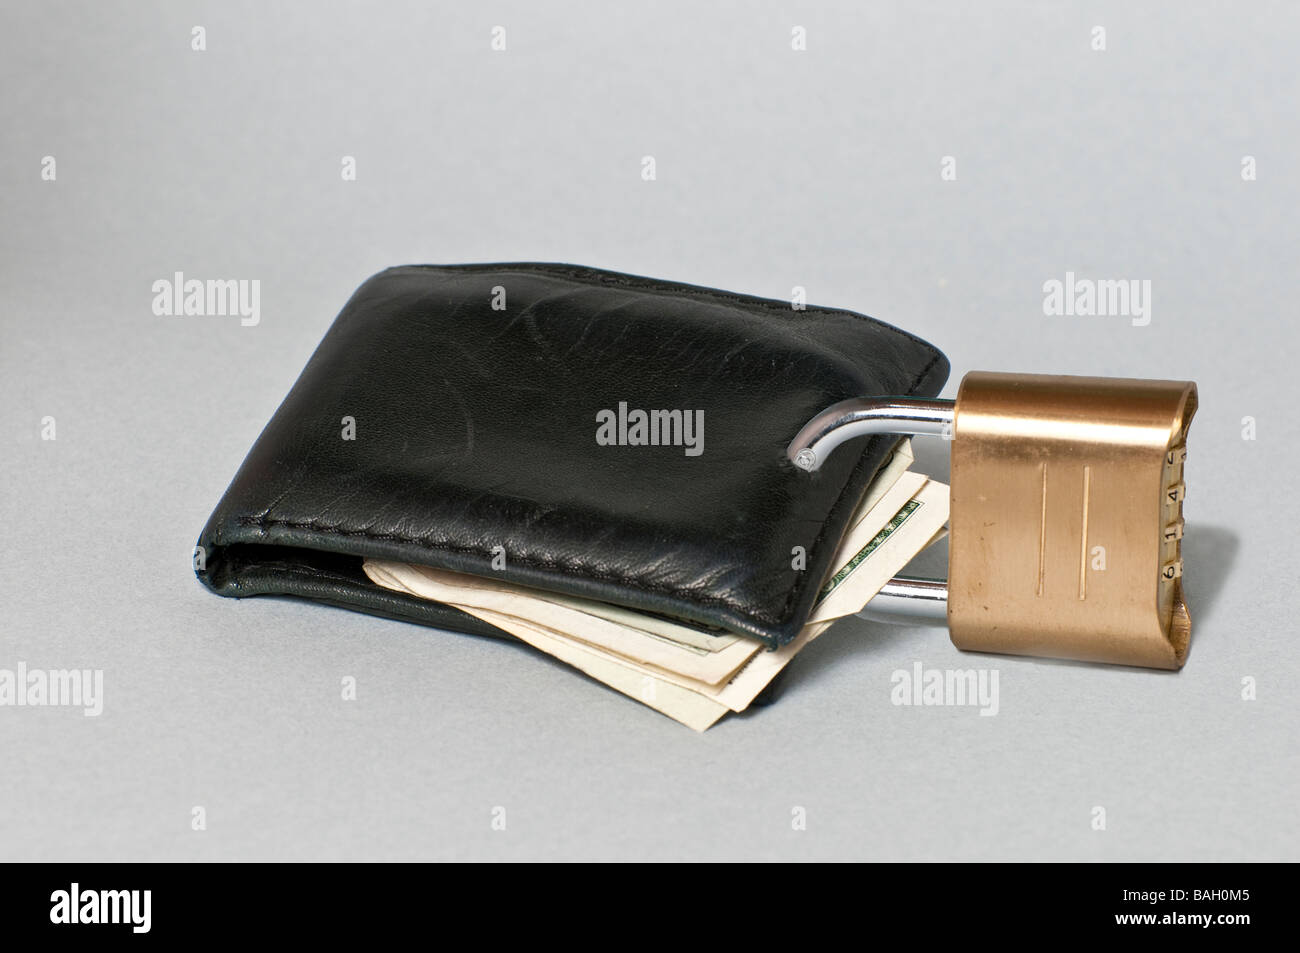 Wallet with lock representing shoppers economizing and being tightfisted with their money - Stock Image